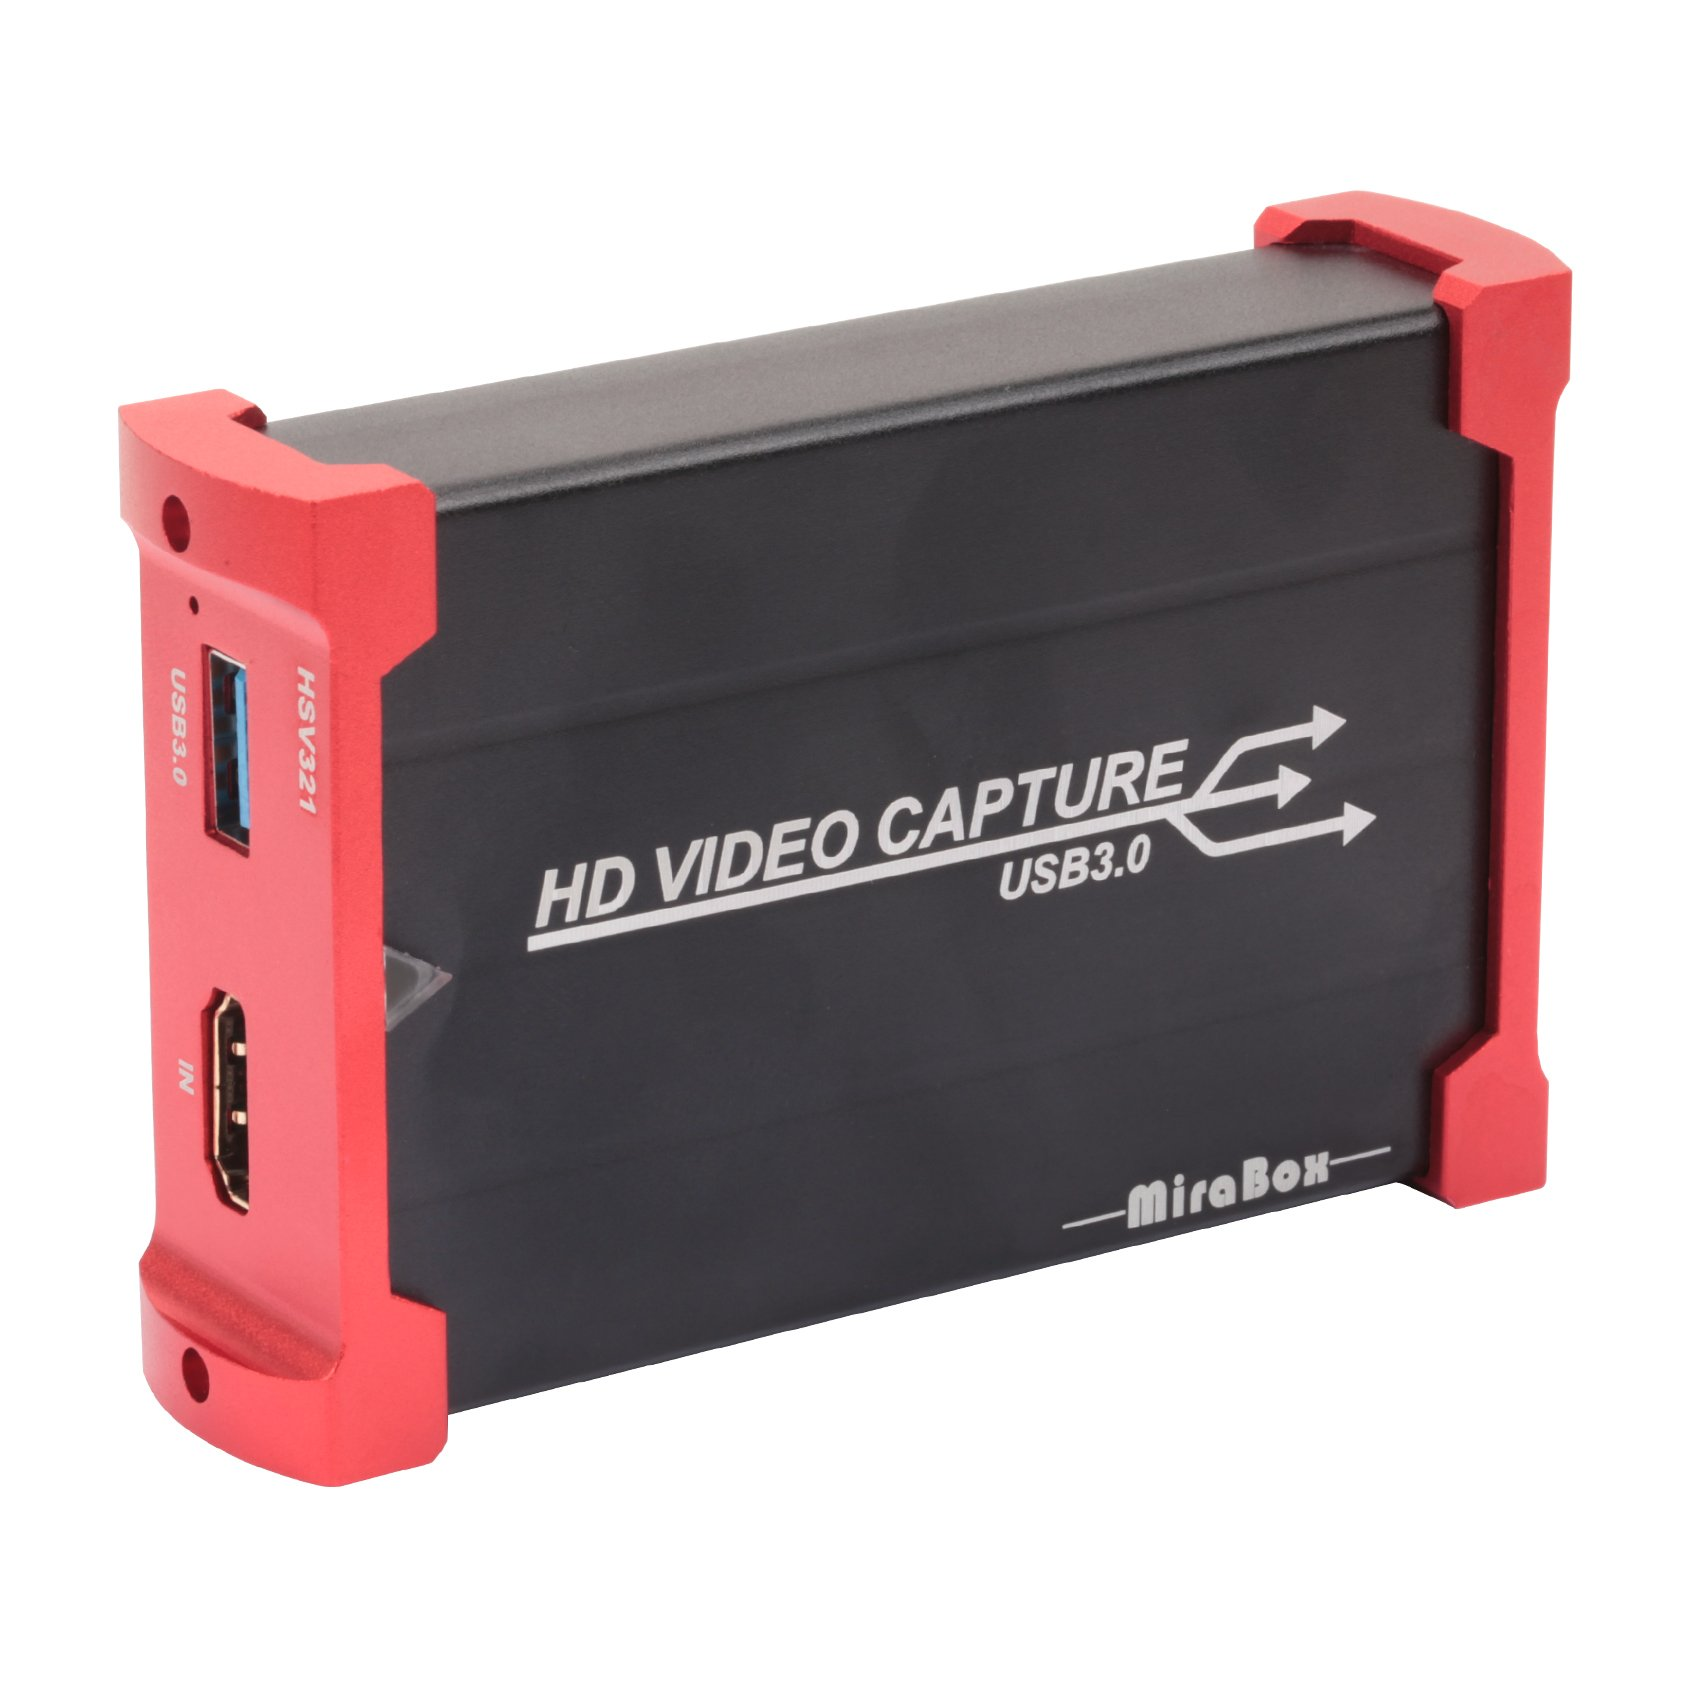 Internal TV Tuner & Capture Cards - 51 - Super Savings! Save